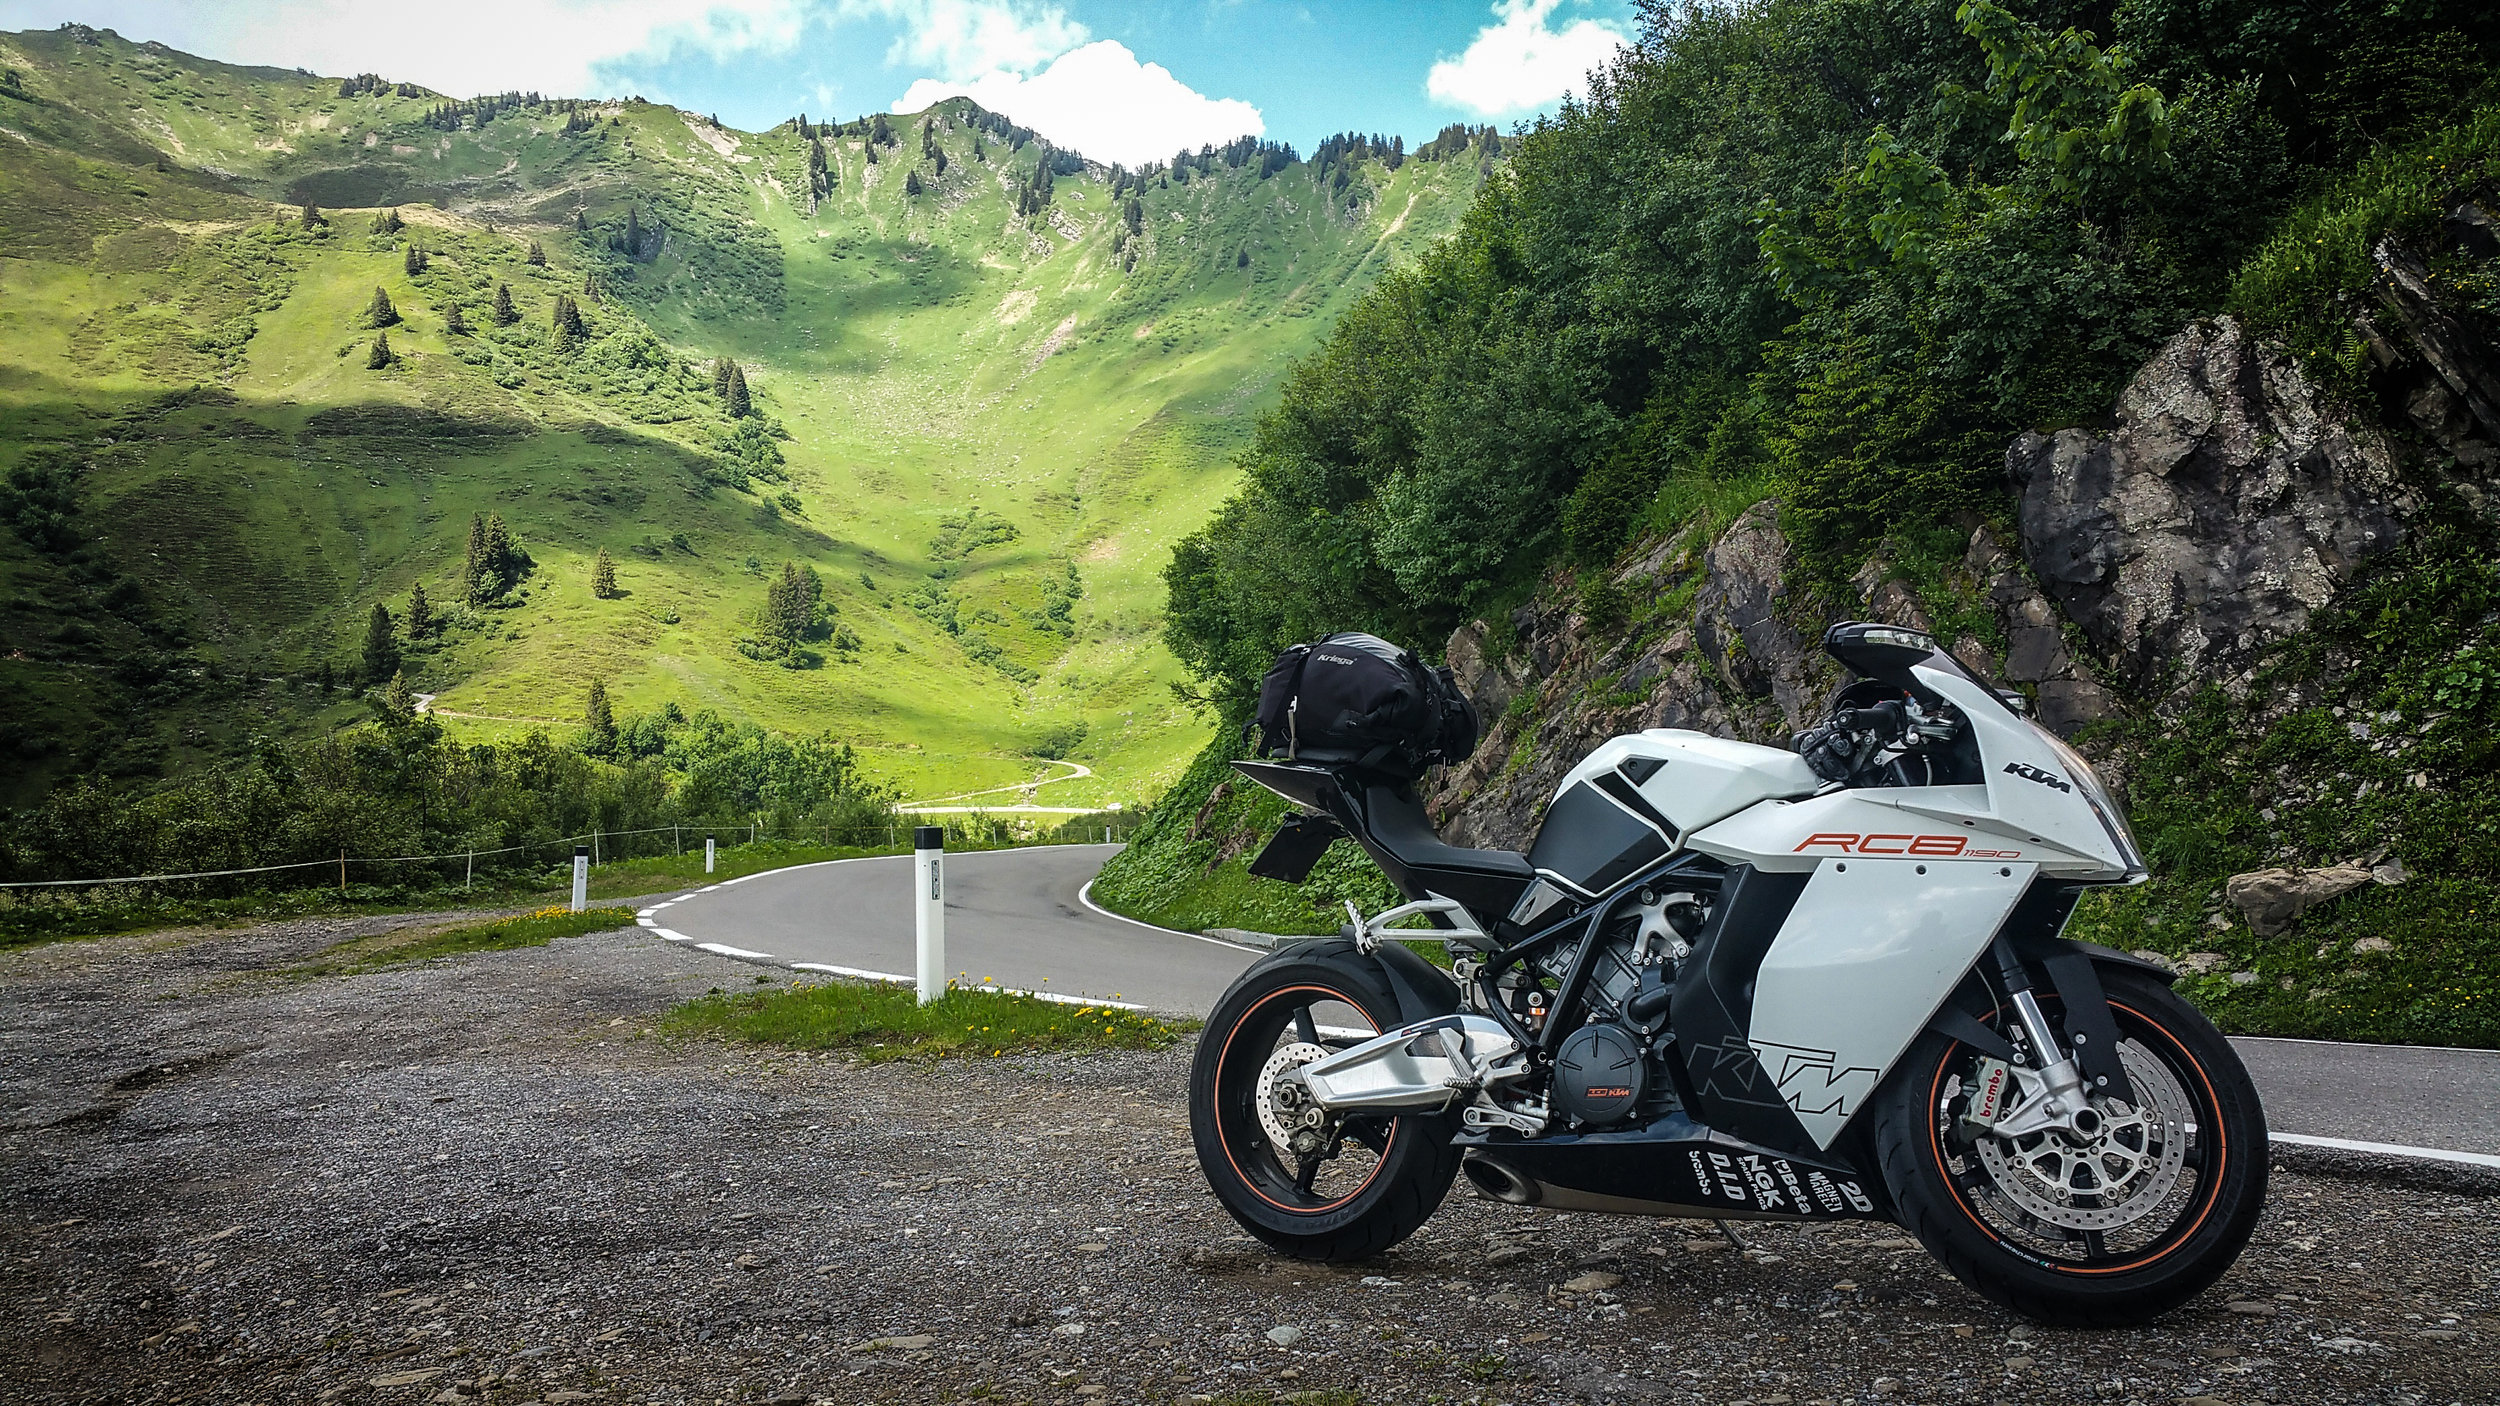 Austria's famous Furka Pass. Attempt on a sportsbike at your peril. Picture: Ben Lindley